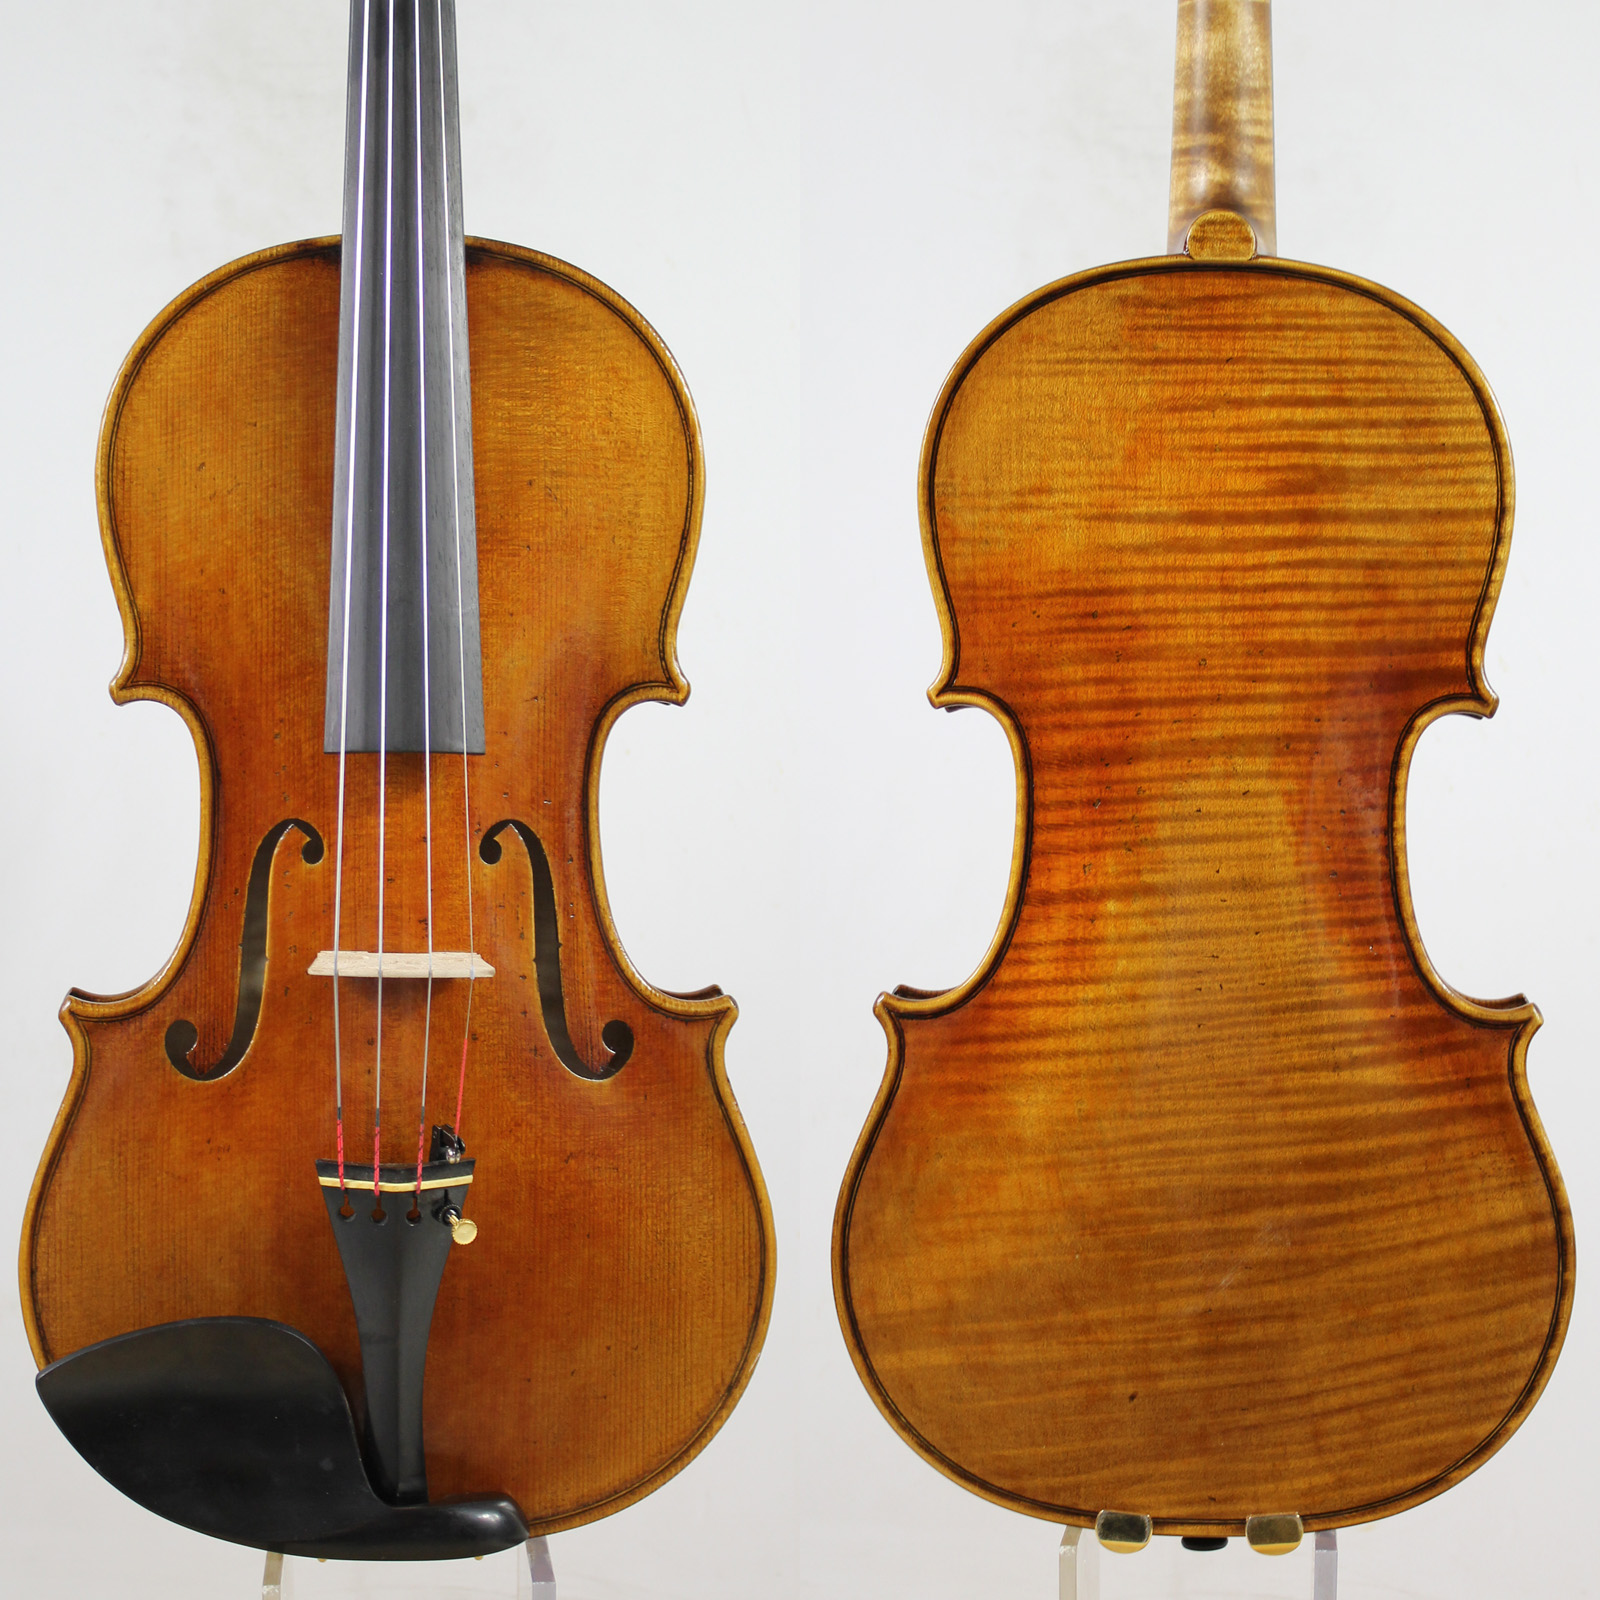 60-y old Spruce!Amazing 1 Pc Back!Antonio Stradivari Soil Violin 4/4 violino Copy, All European Wood,Free Shipping!